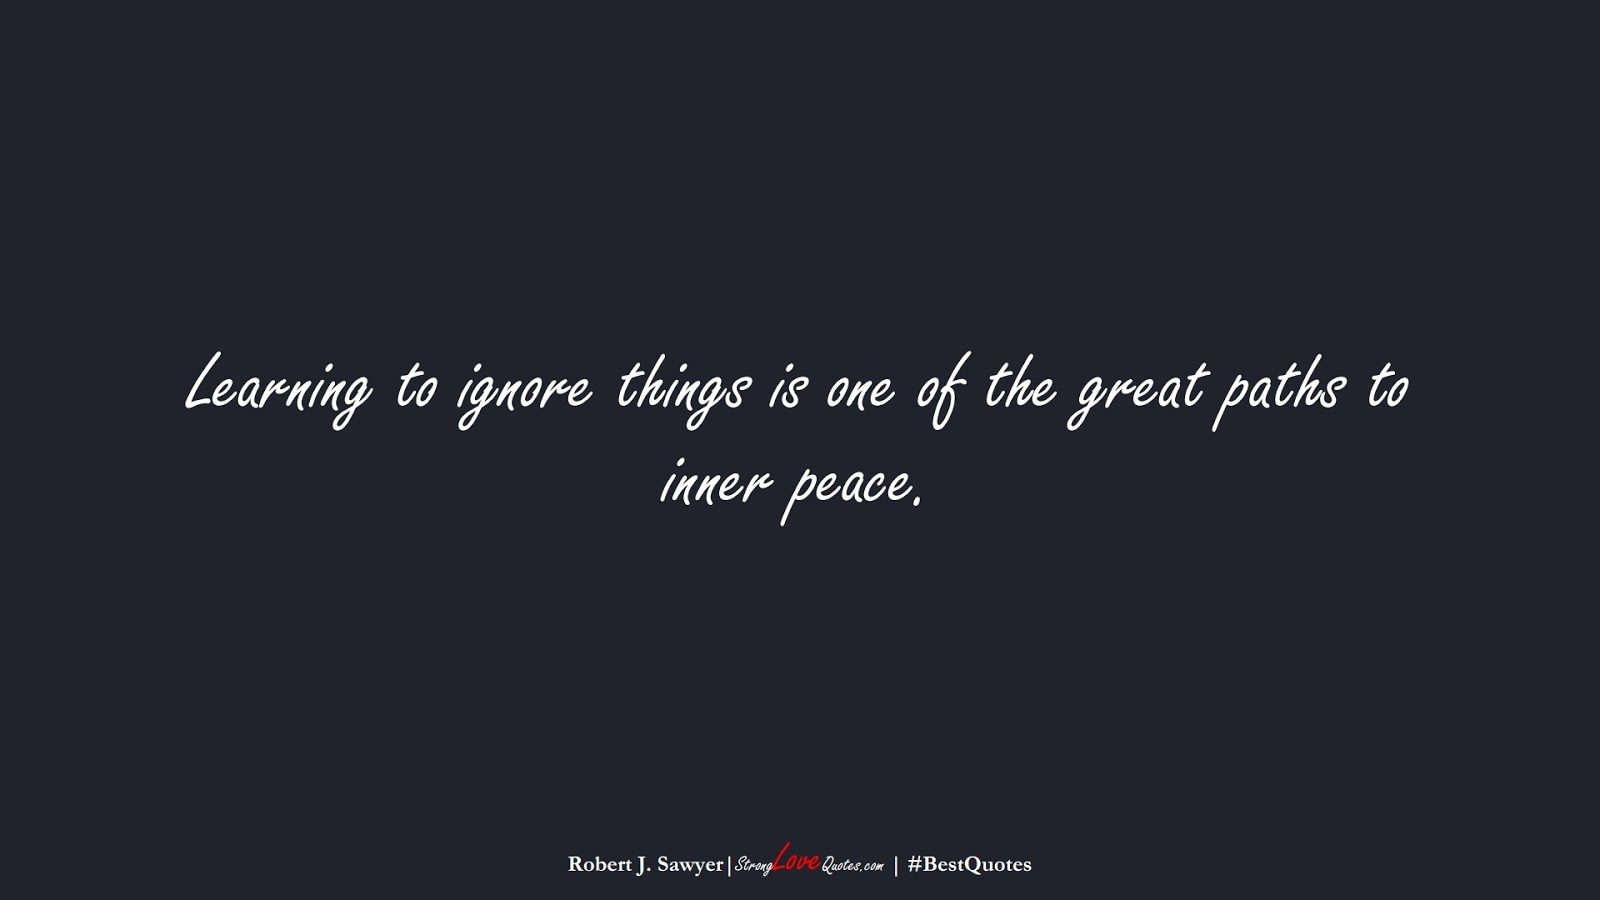 Learning to ignore things is one of the great paths to inner peace. (Robert J. Sawyer);  #BestQuotes